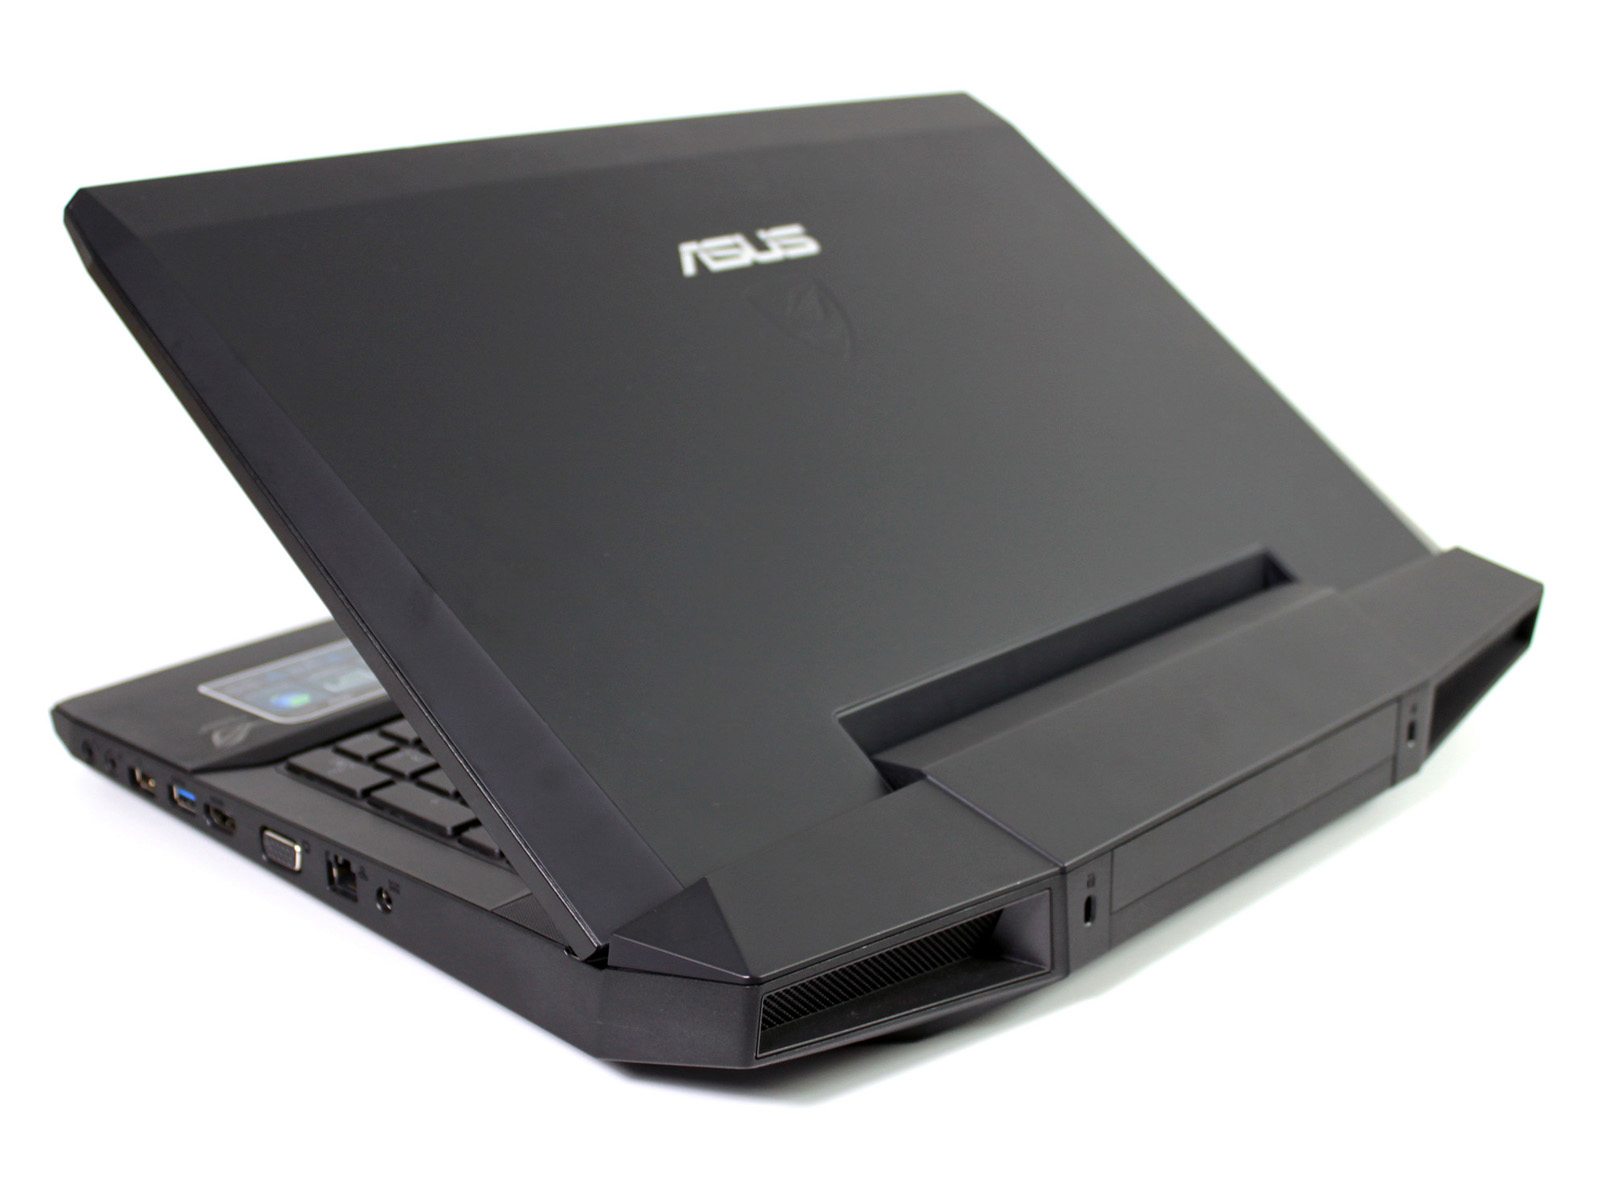 ASUS G53JW BLUETOOTH DRIVERS FOR WINDOWS 8